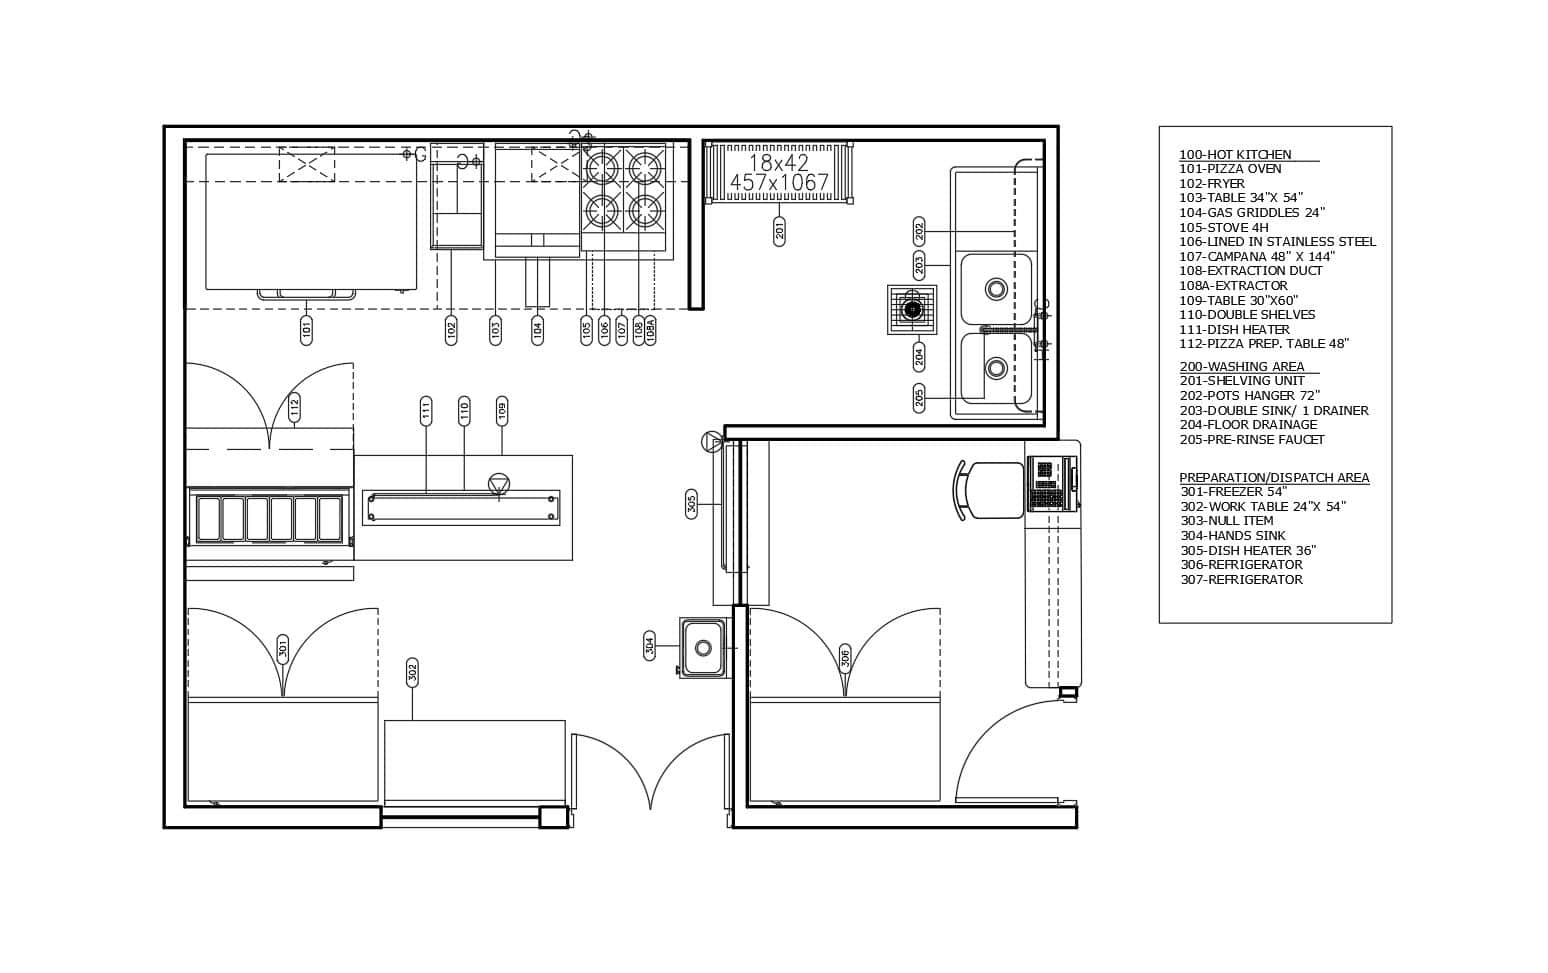 Small Pizza Shop layout plan